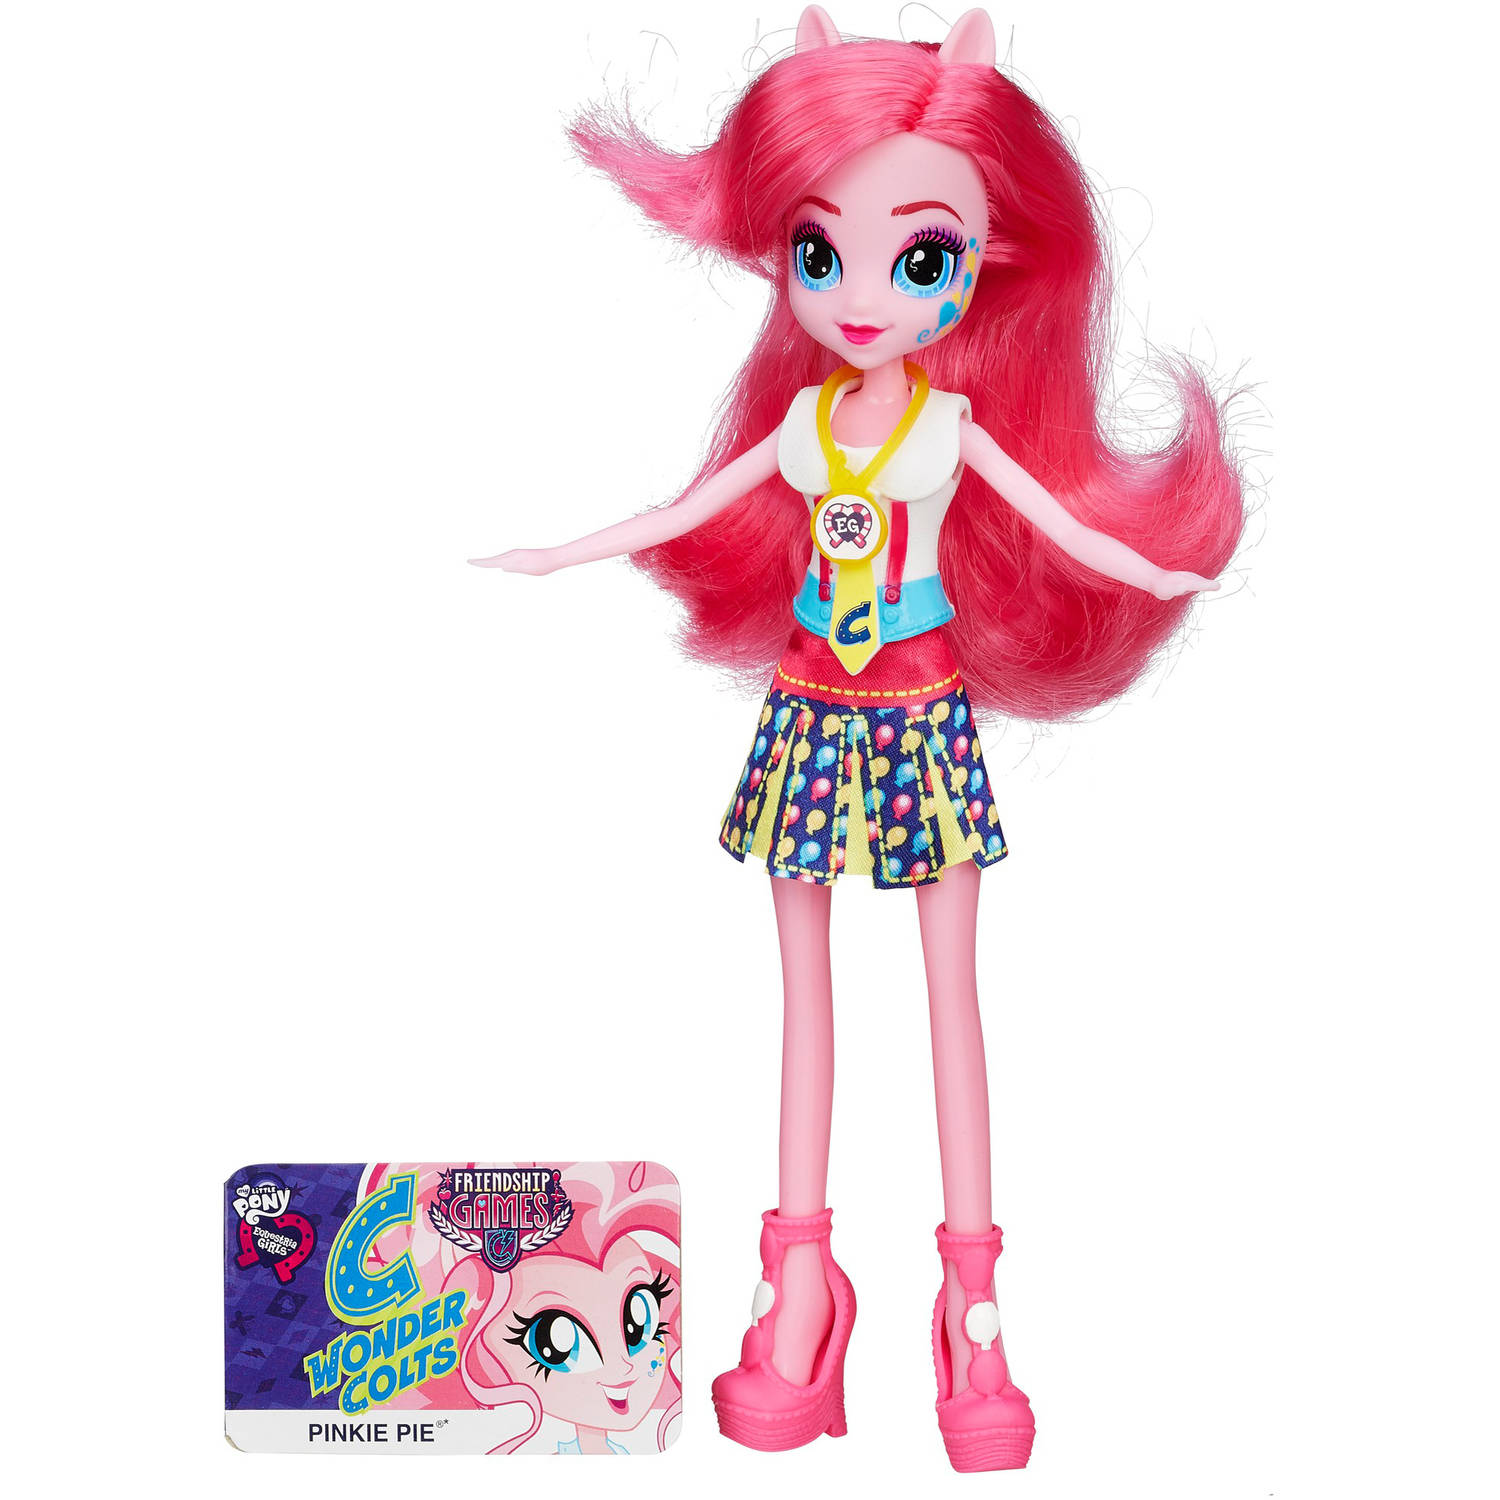 My Little Pony Equestria Girls Pinkie Pie Friendship Games Doll